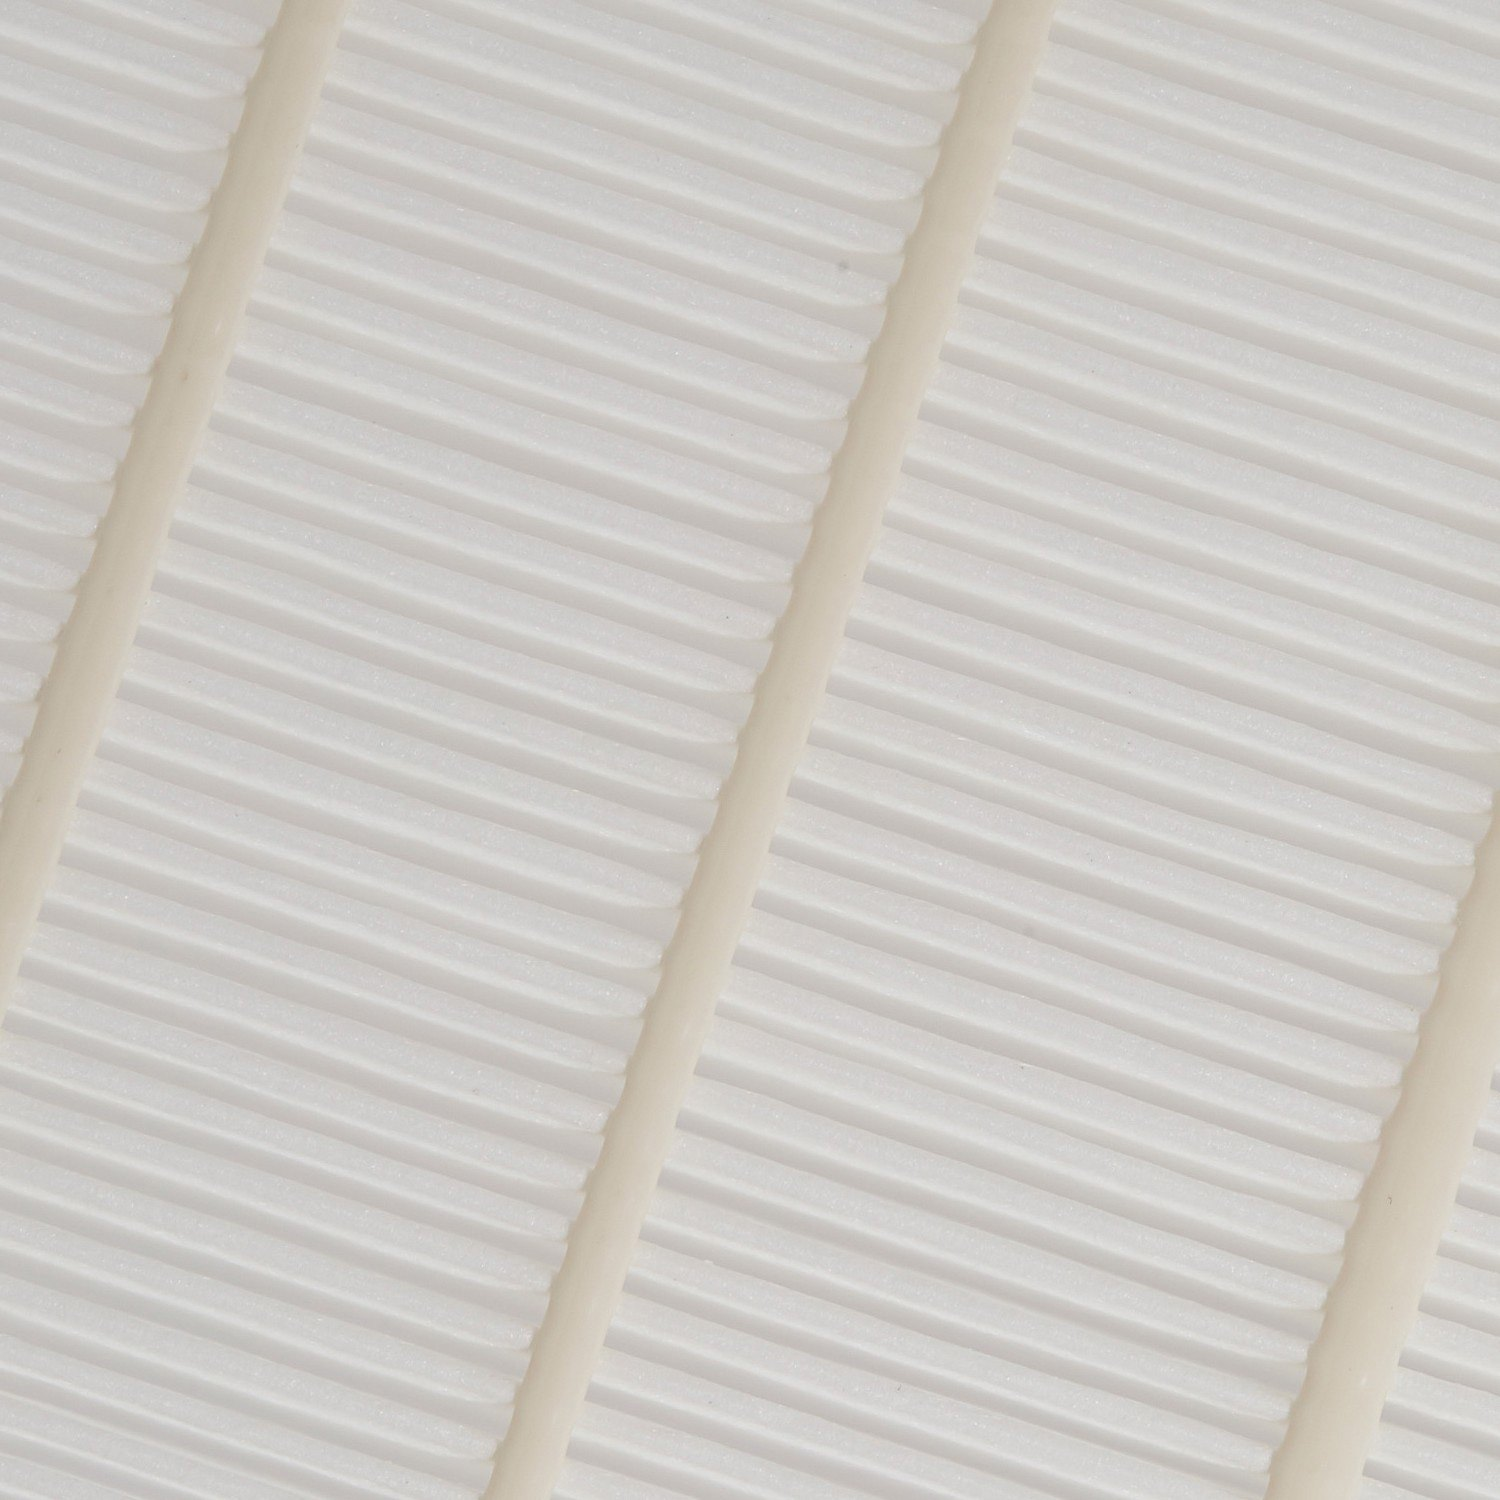 800008p-5 Amazing toyota Camry 2006 Cabin Air Filter Cars Trend